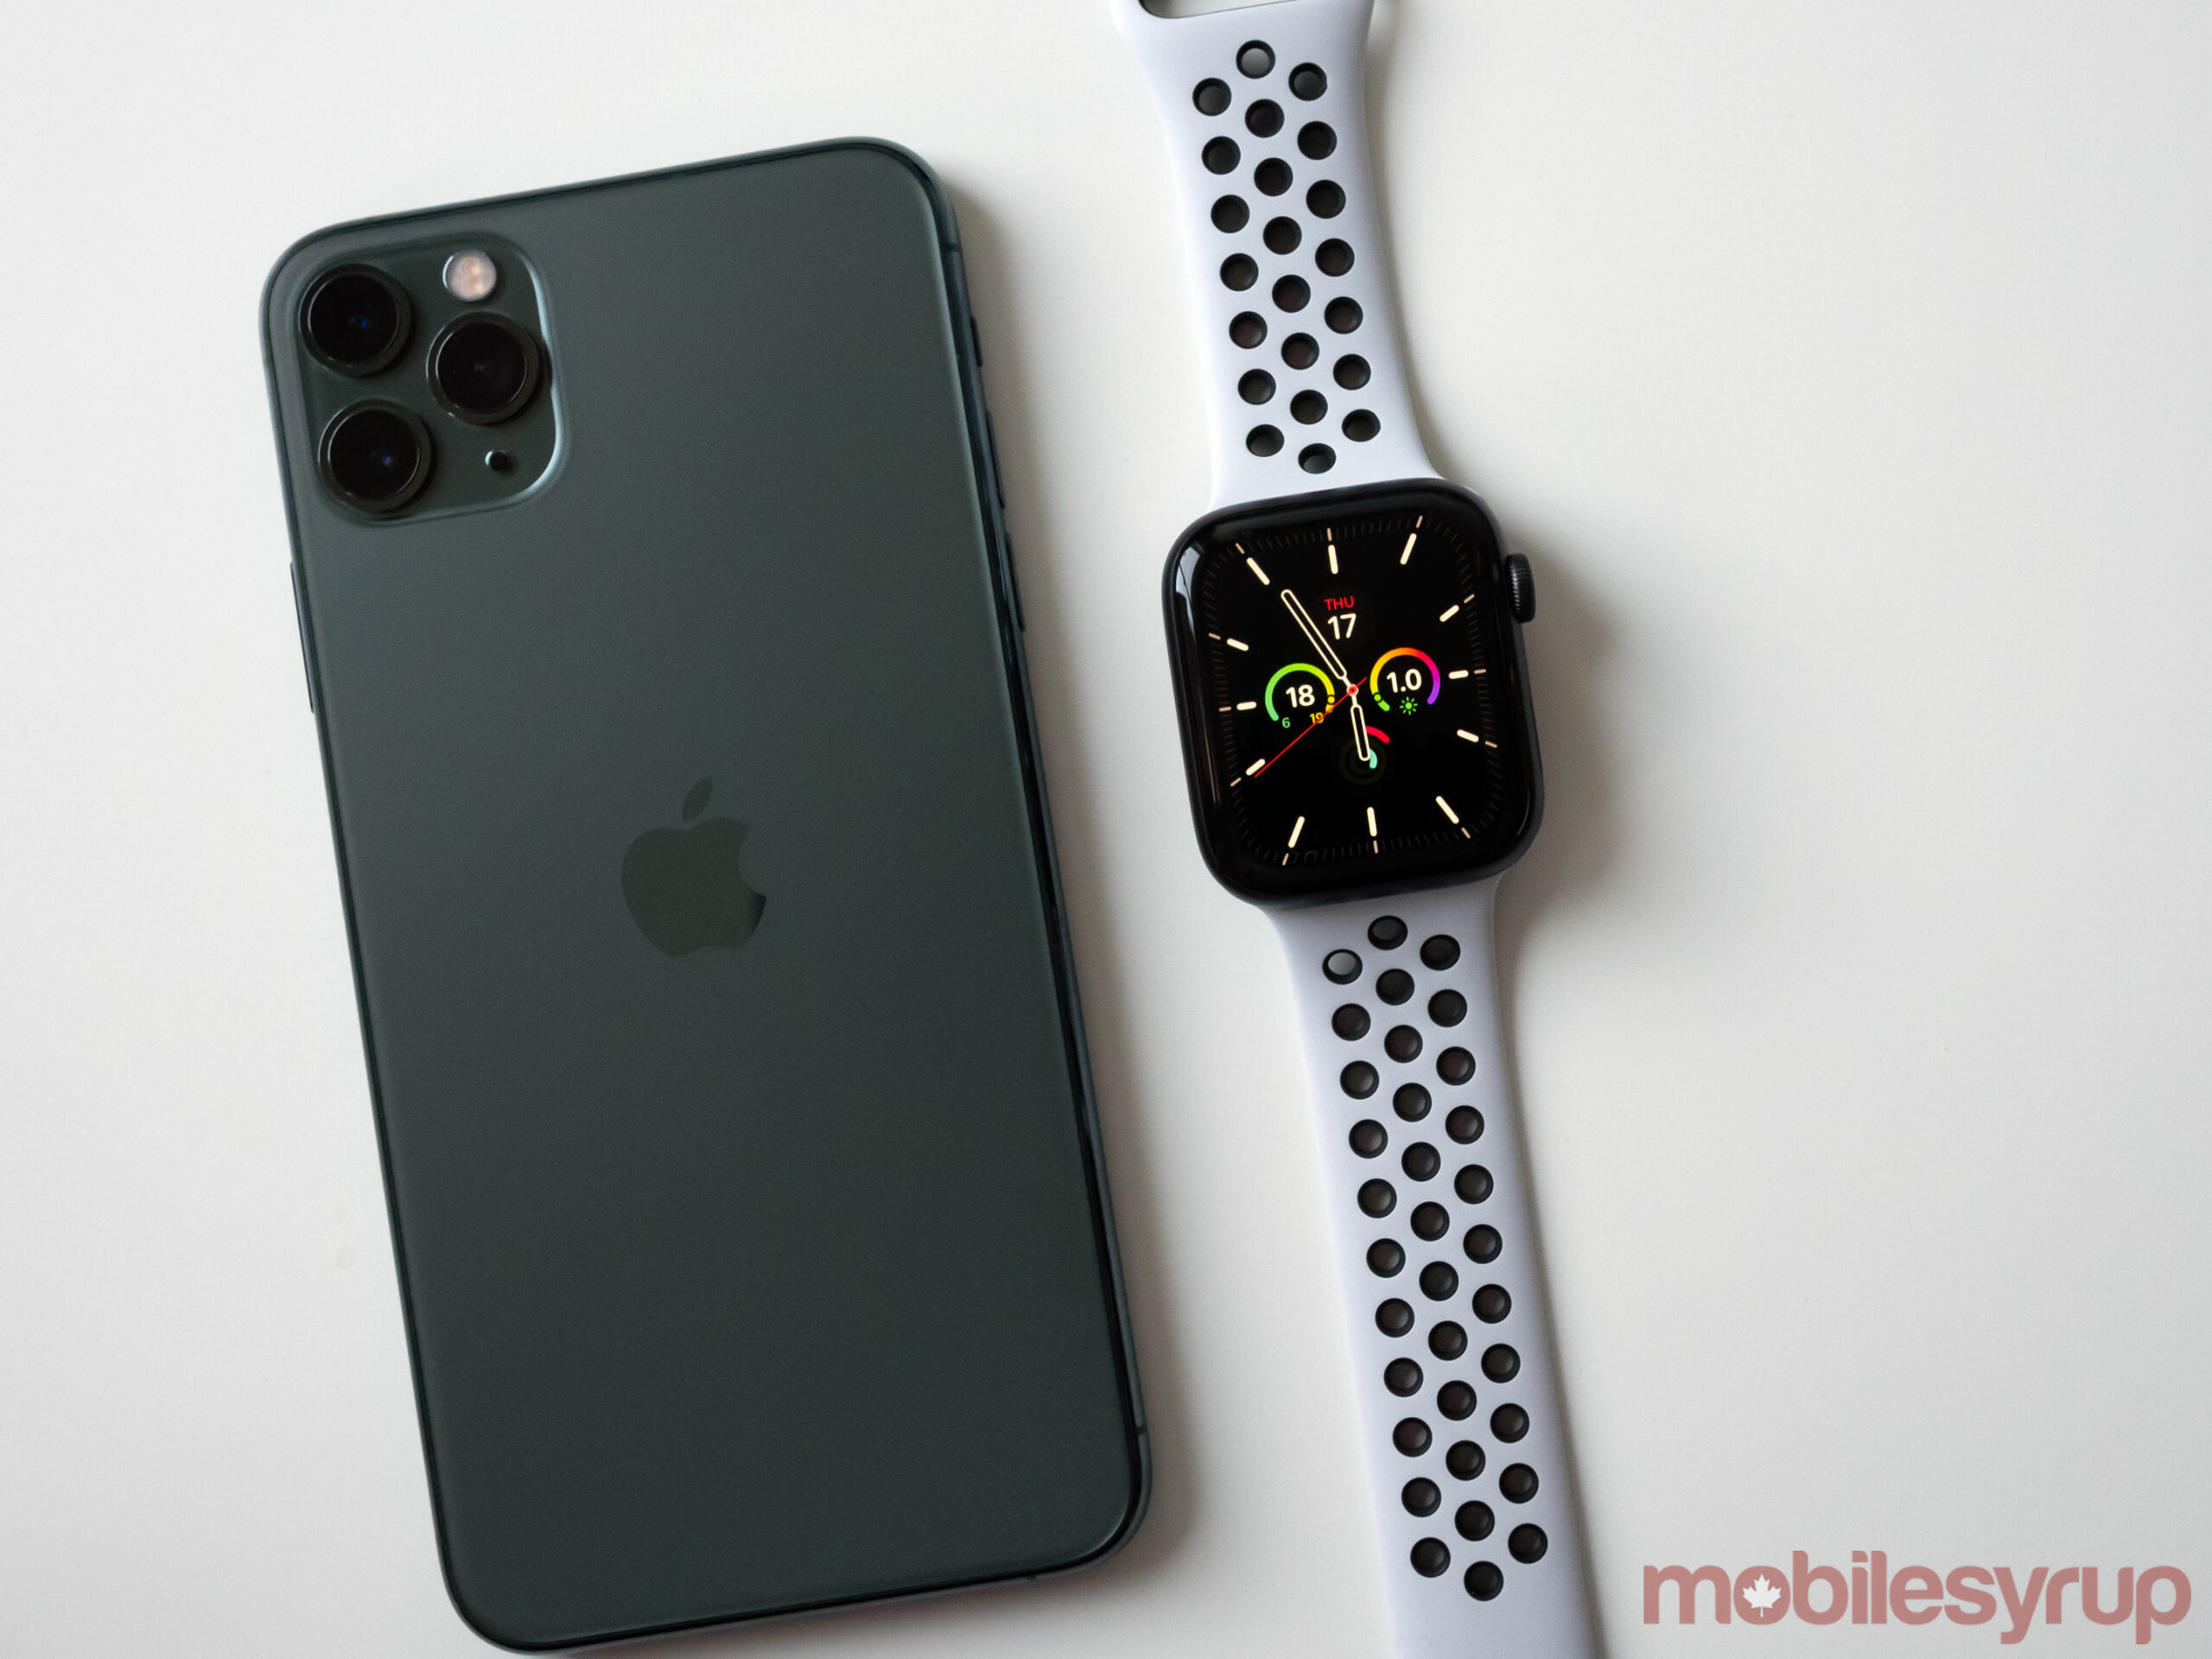 Apple Watch SE beside iPhone 11 Pro Max